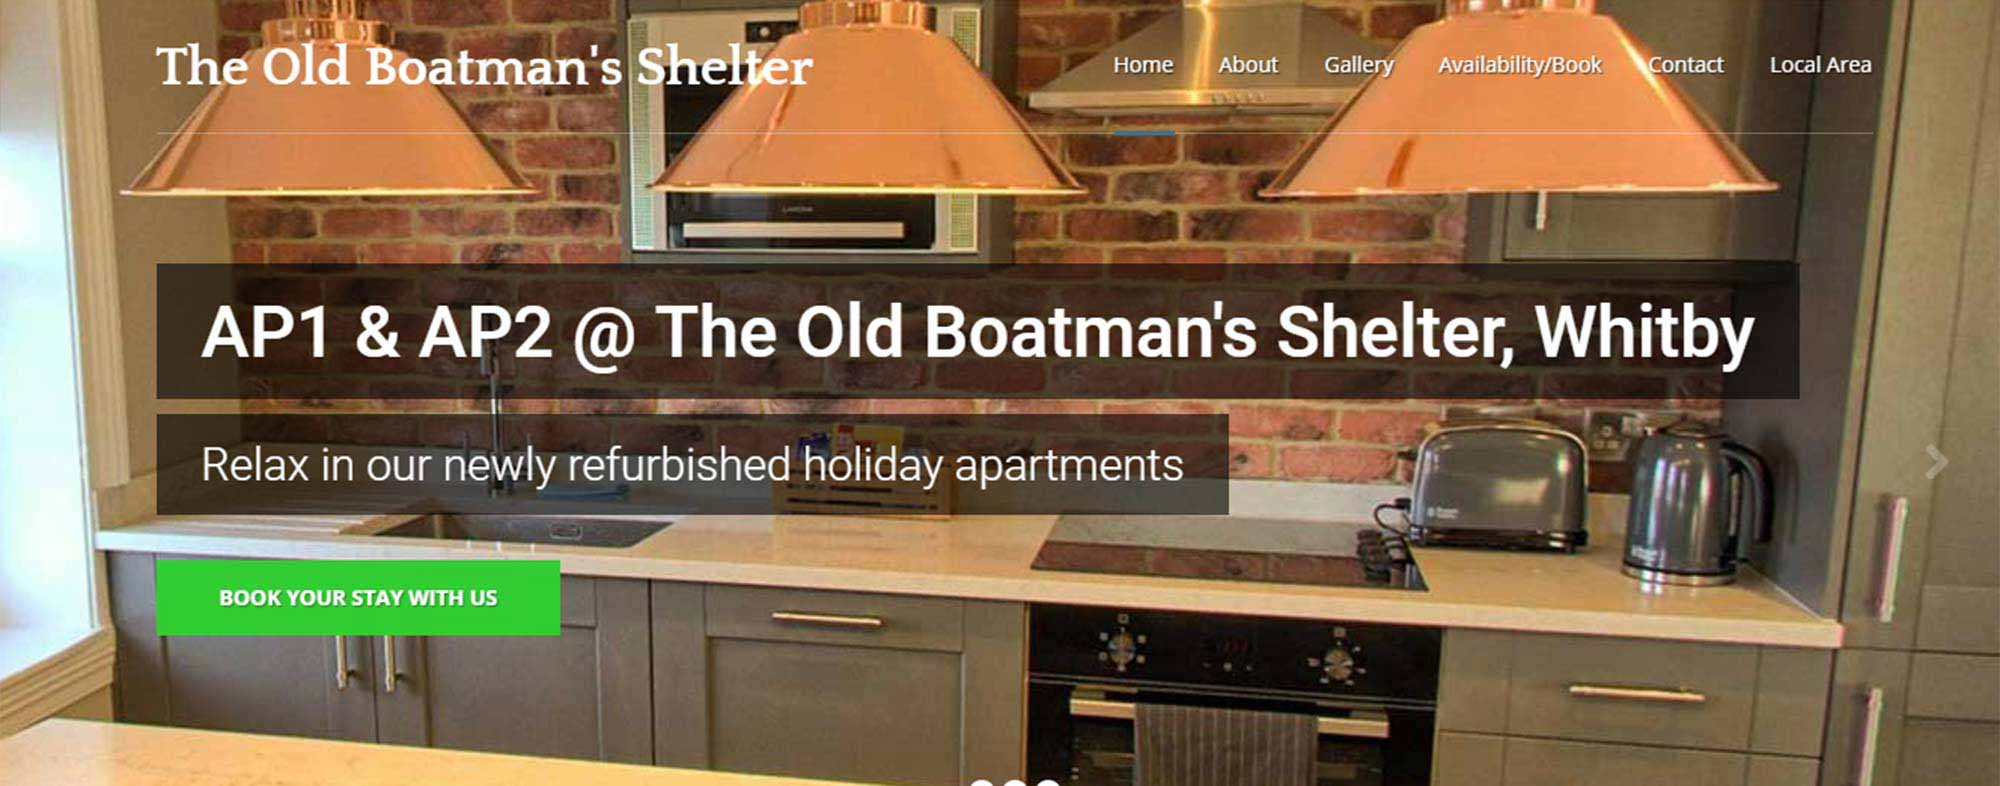 Old Boatman's Shelter Website